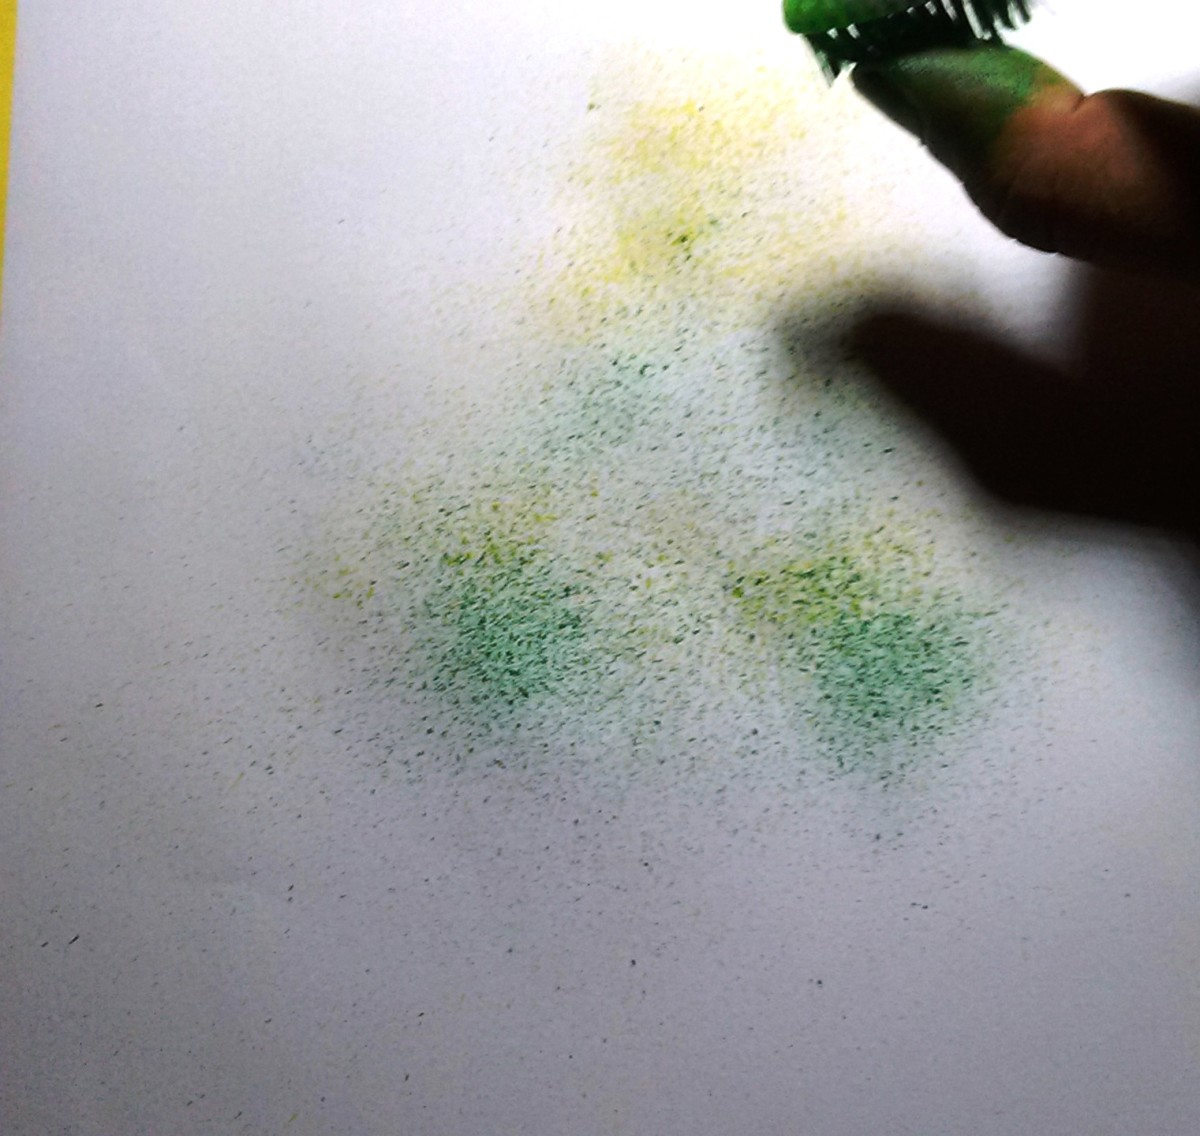 Spray the green paint below the yellow colors.